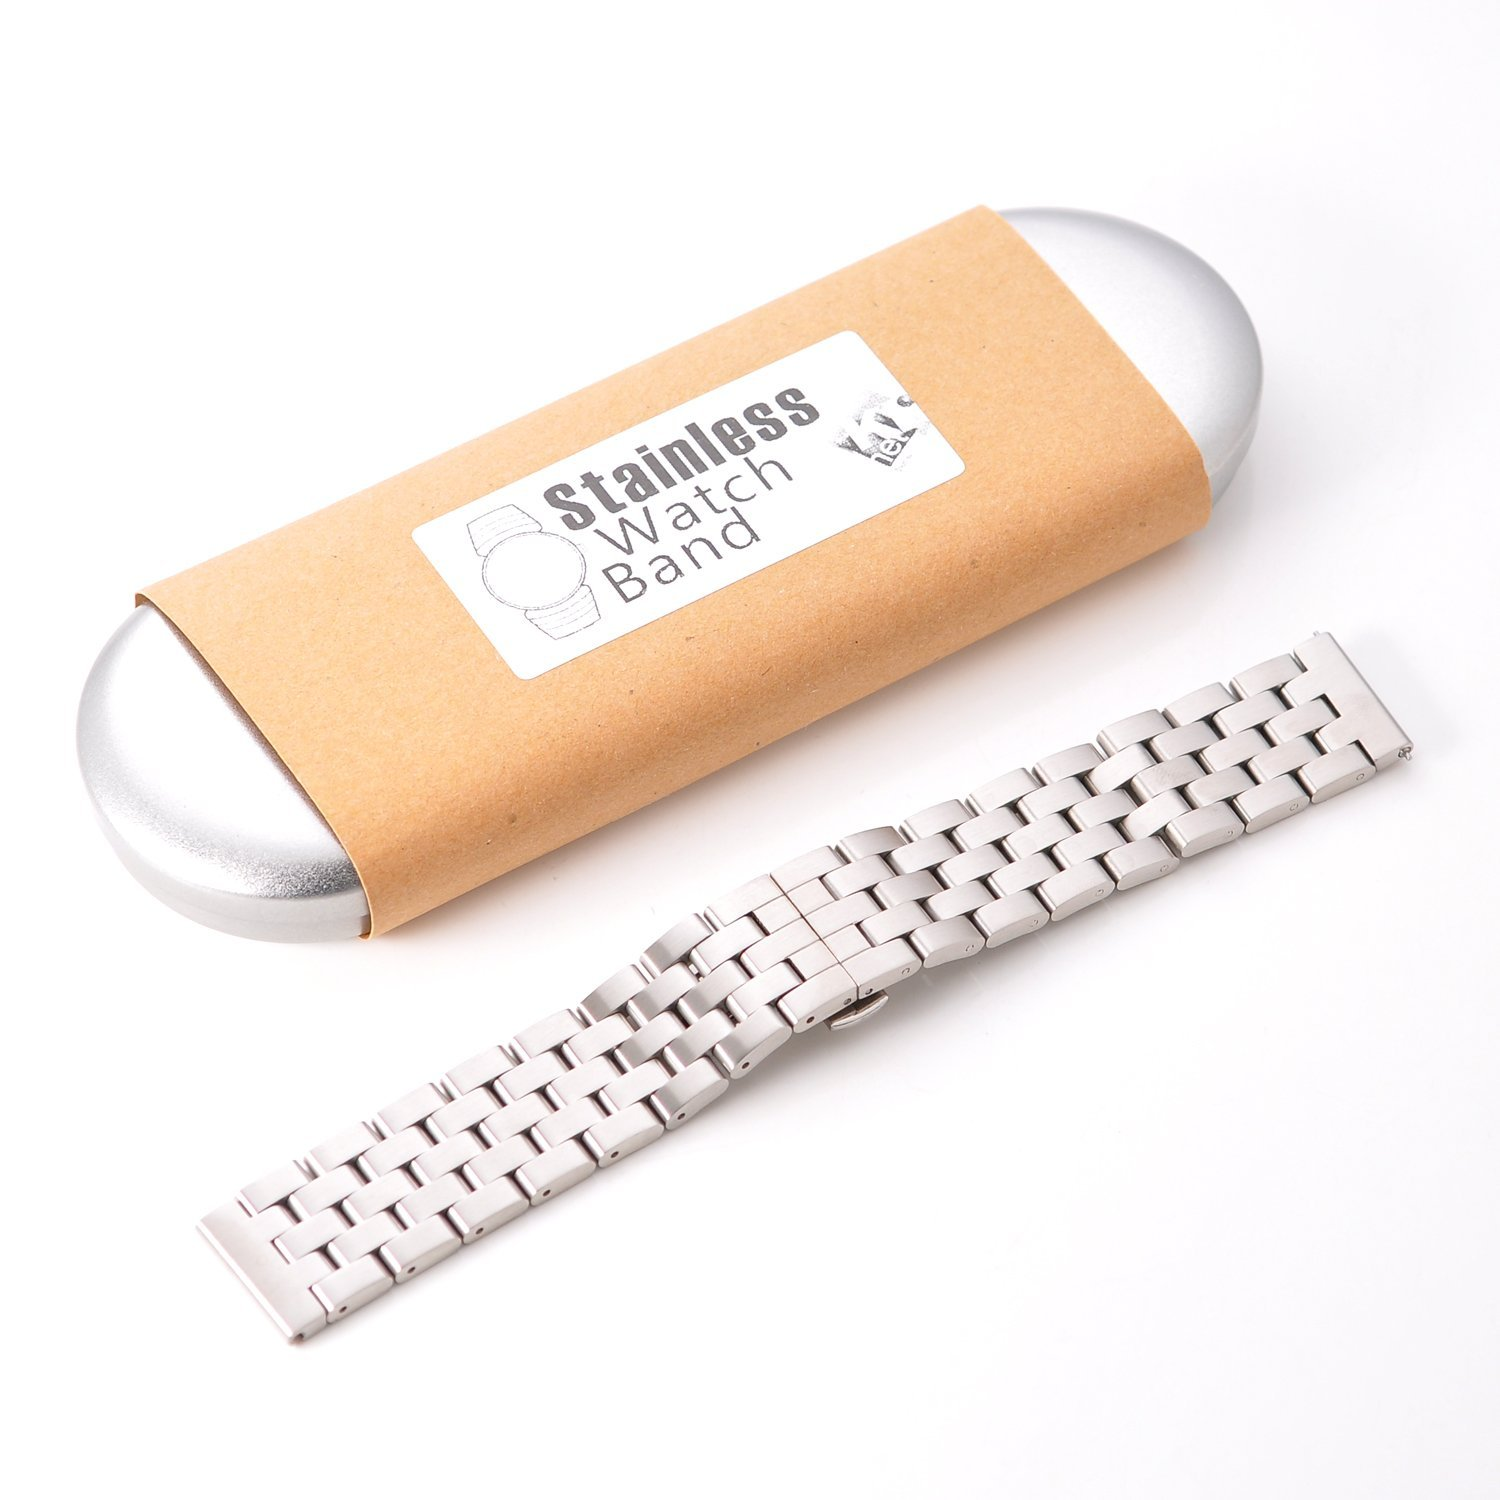 KR-NET 22mm Stainless Steel Chain Metal Smart Watch Strap Band with Quick Release Spring Lock Luxury for Pebble Time (Chainmail/Silver)